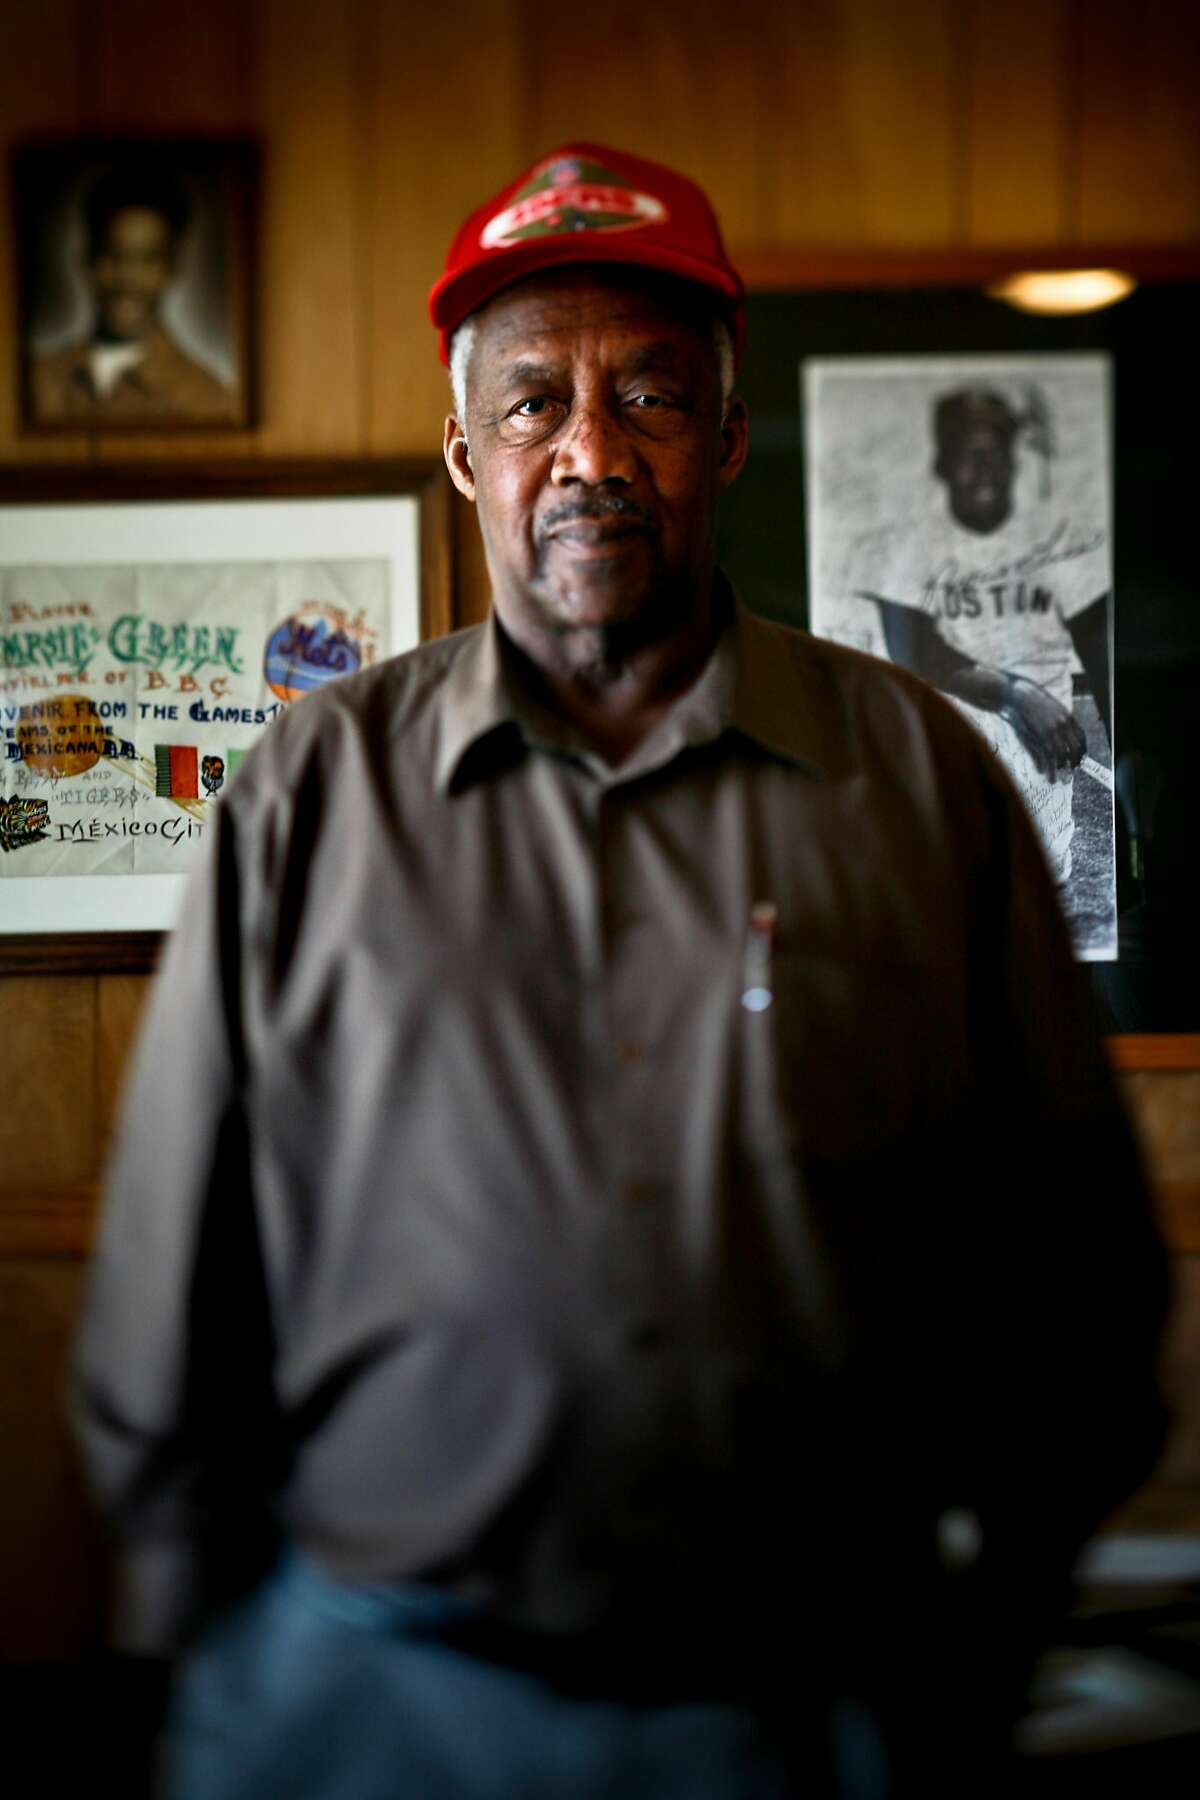 """Elijah """"Pumpsie"""" Green is seen in his El Cerrito home on Wednesday, June 24, 2009. Green was the first African-American player to play for the Boston Red Sox which was the last Major League Baseball team to integrate. He started with the team in 1959."""